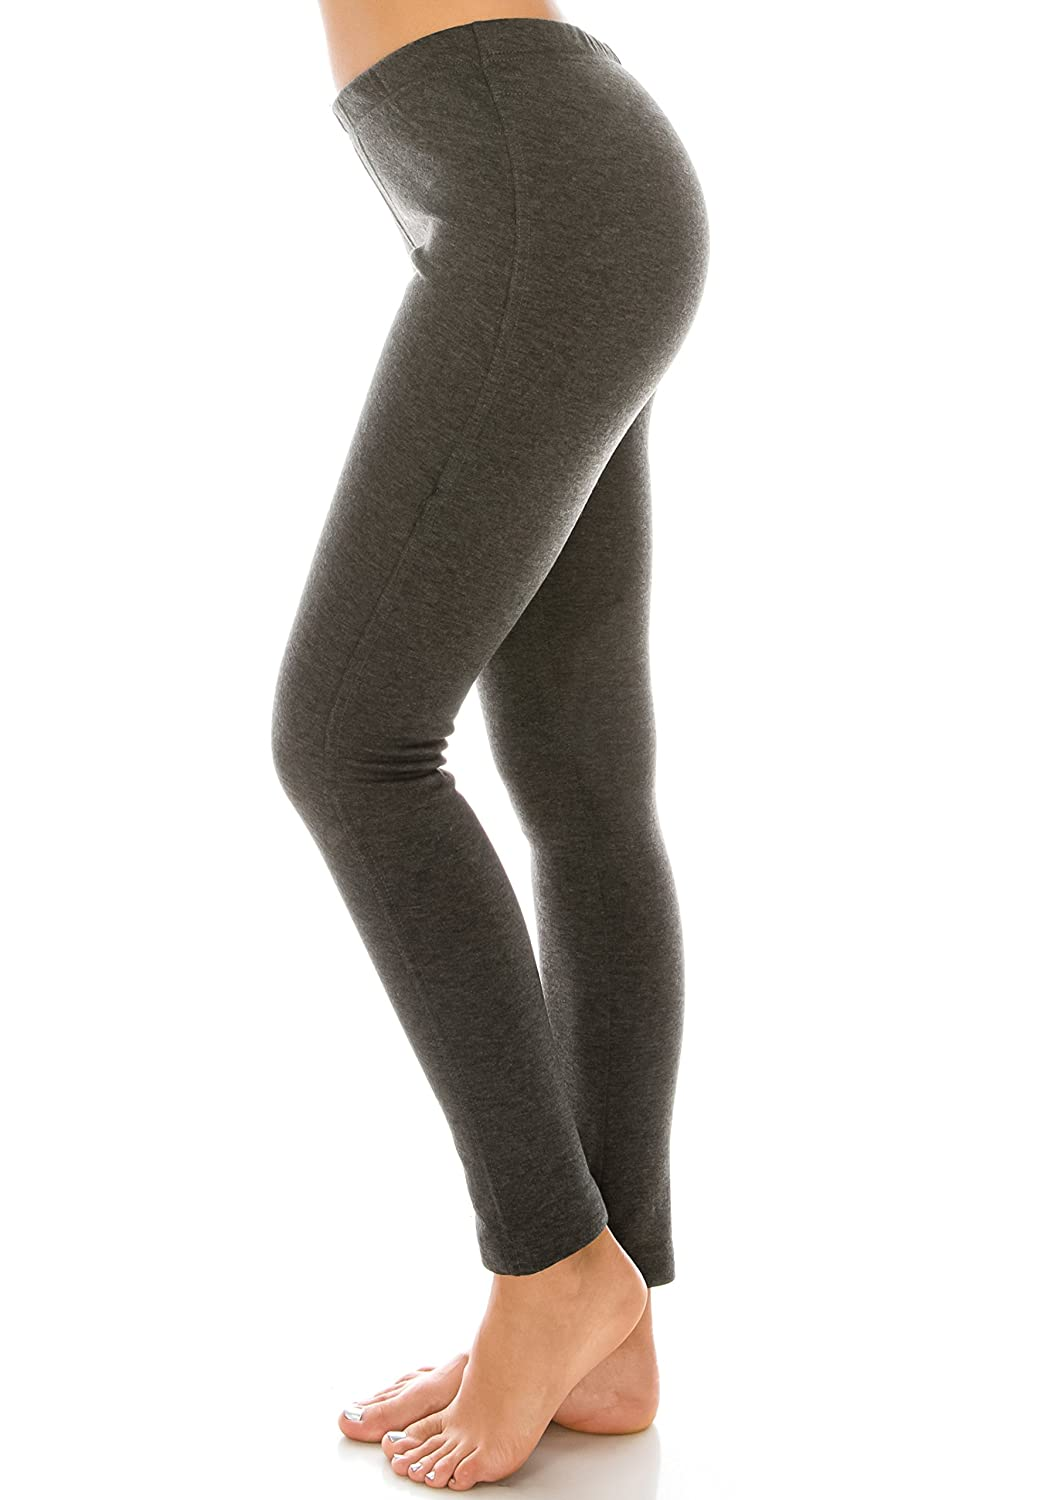 1f20878c69920 95% Polyester 5% Span Imported Pull On closure. Fits Any Sizes: These fall  and winter Heavy Weight Fleece Lined Leggings - EttelLut High Quality Polar  ...